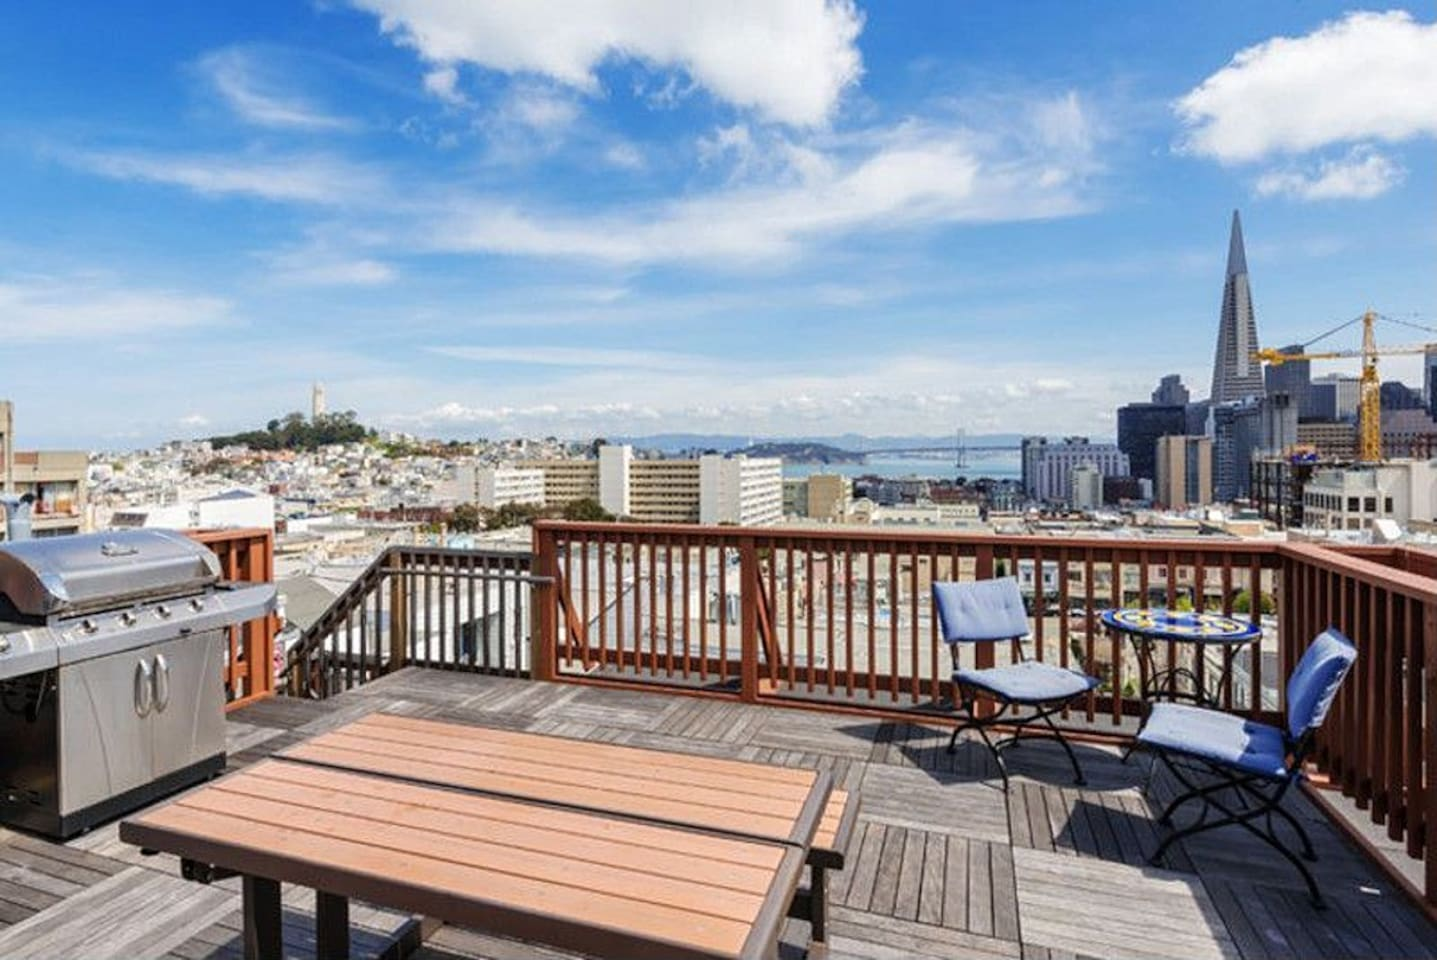 Shared roofdeck with BBQ grills you may use.